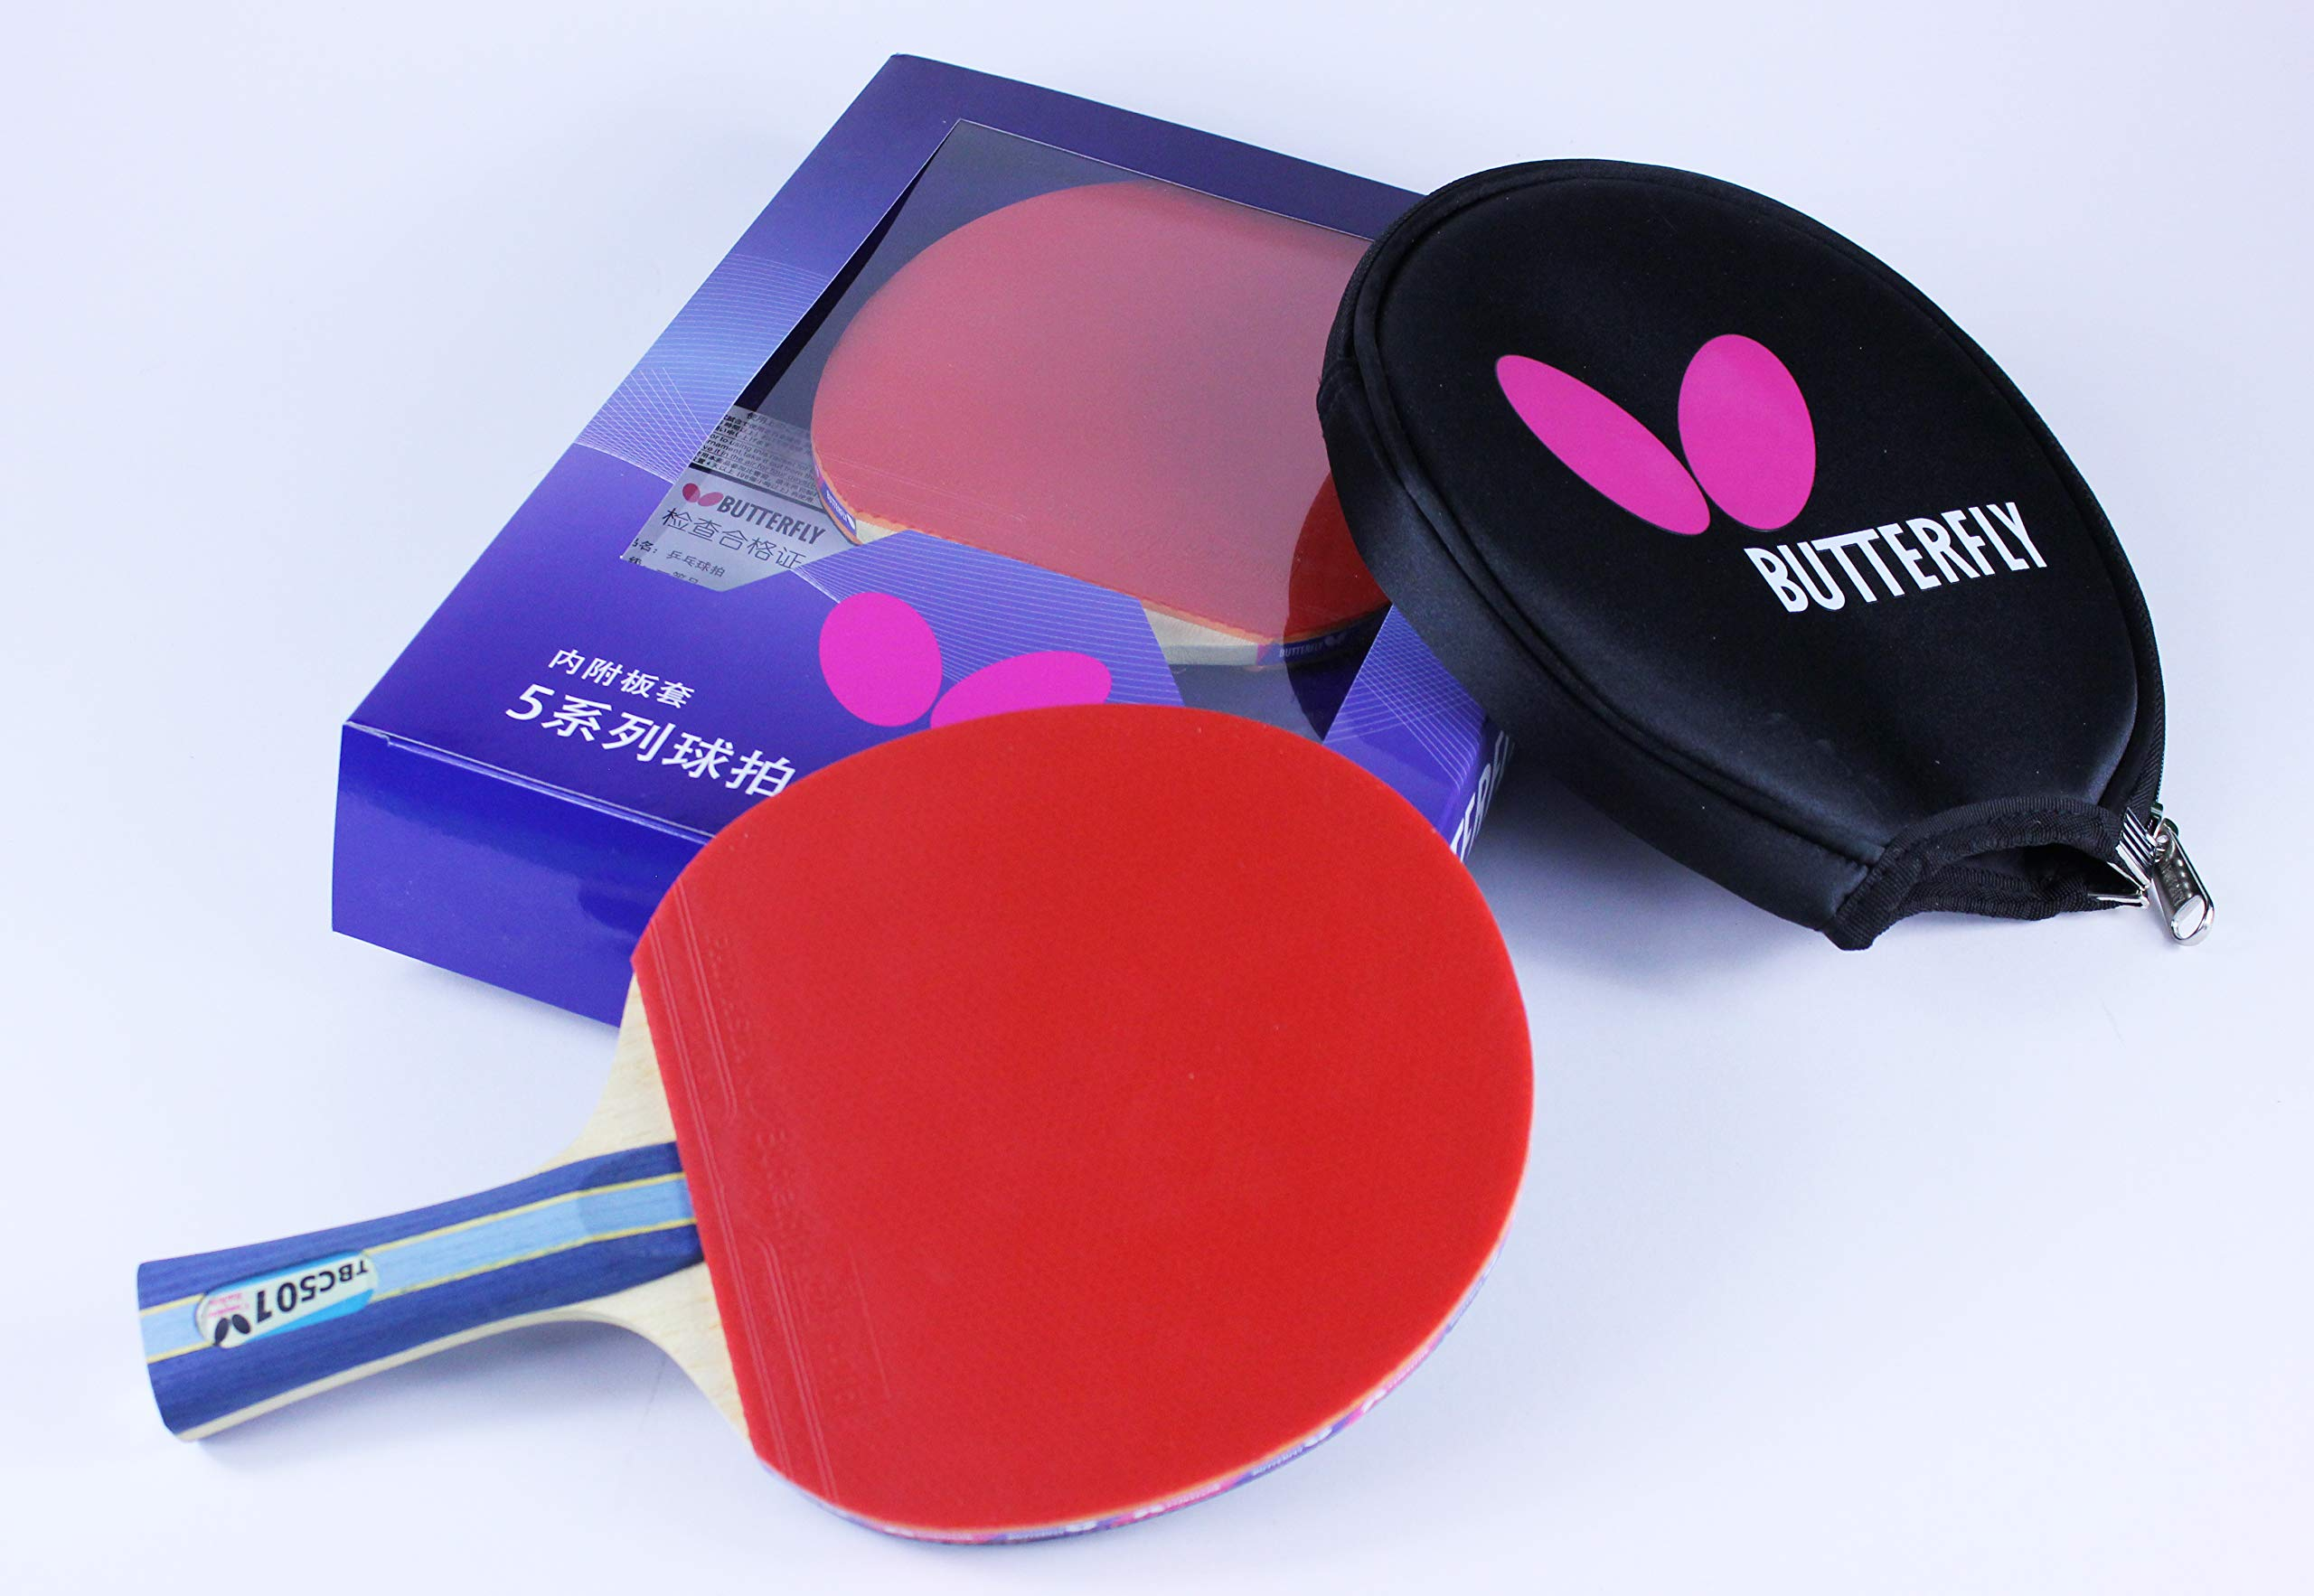 Butterfly 501 Table Tennis Racket Set - 1 Professional Ping Pong Paddle - 1 Ping Pong Paddle Case - Gift Box - ITTF Approved